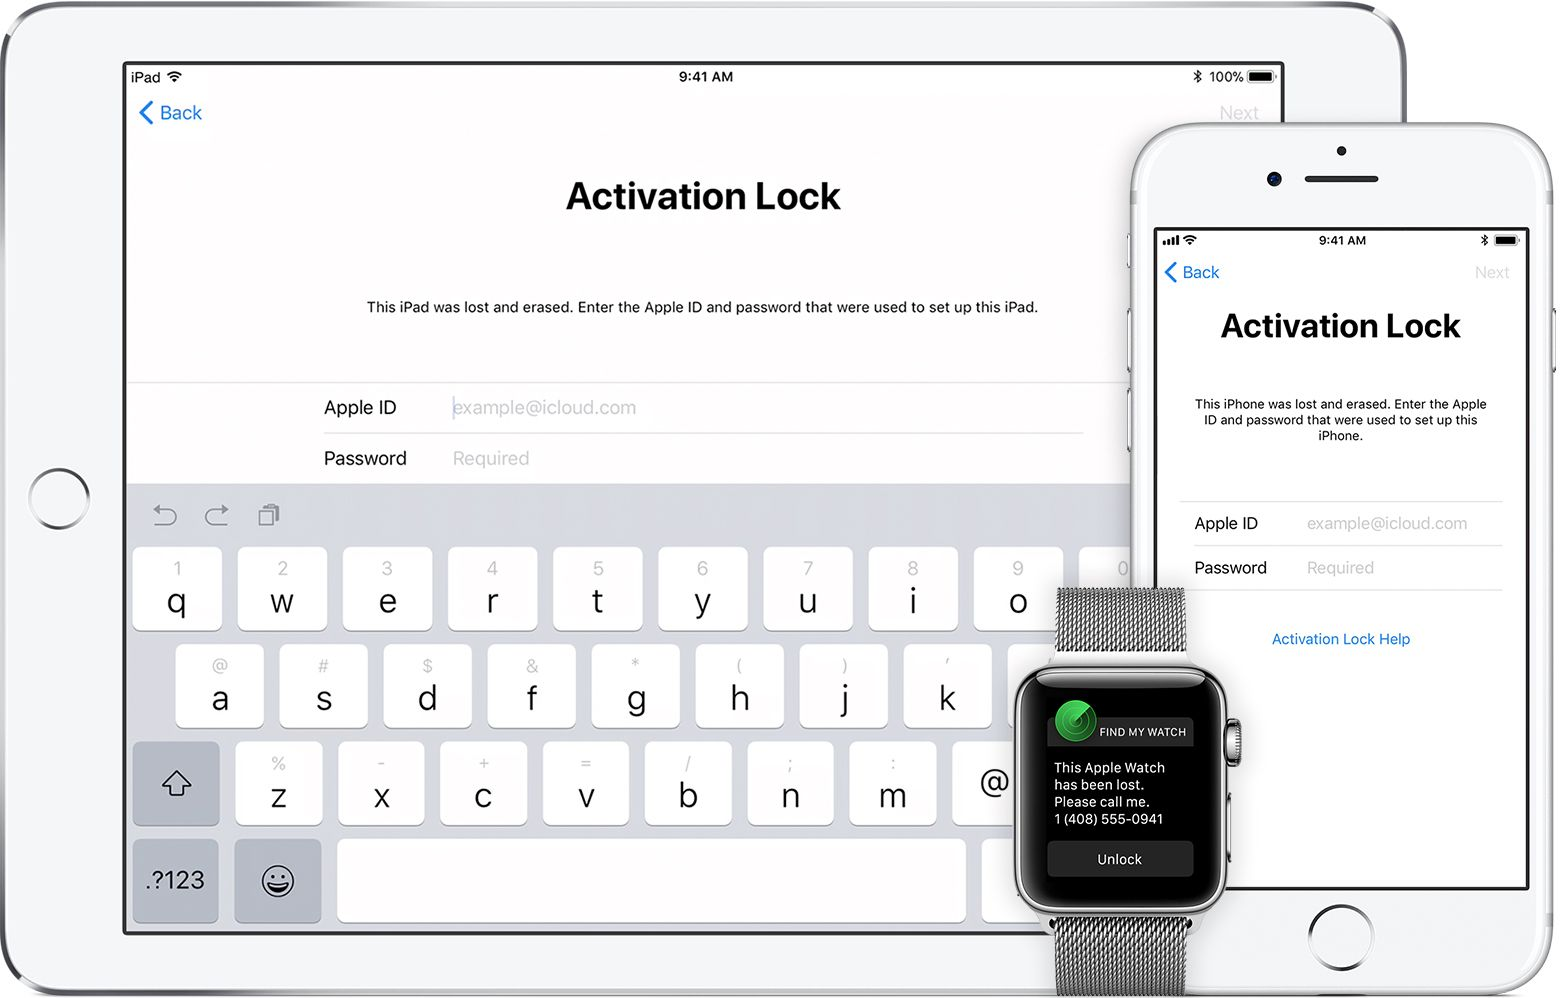 b9806ba026e69aff1dcae73c89da5727 - How To Get Into A Locked Ipod Touch 5